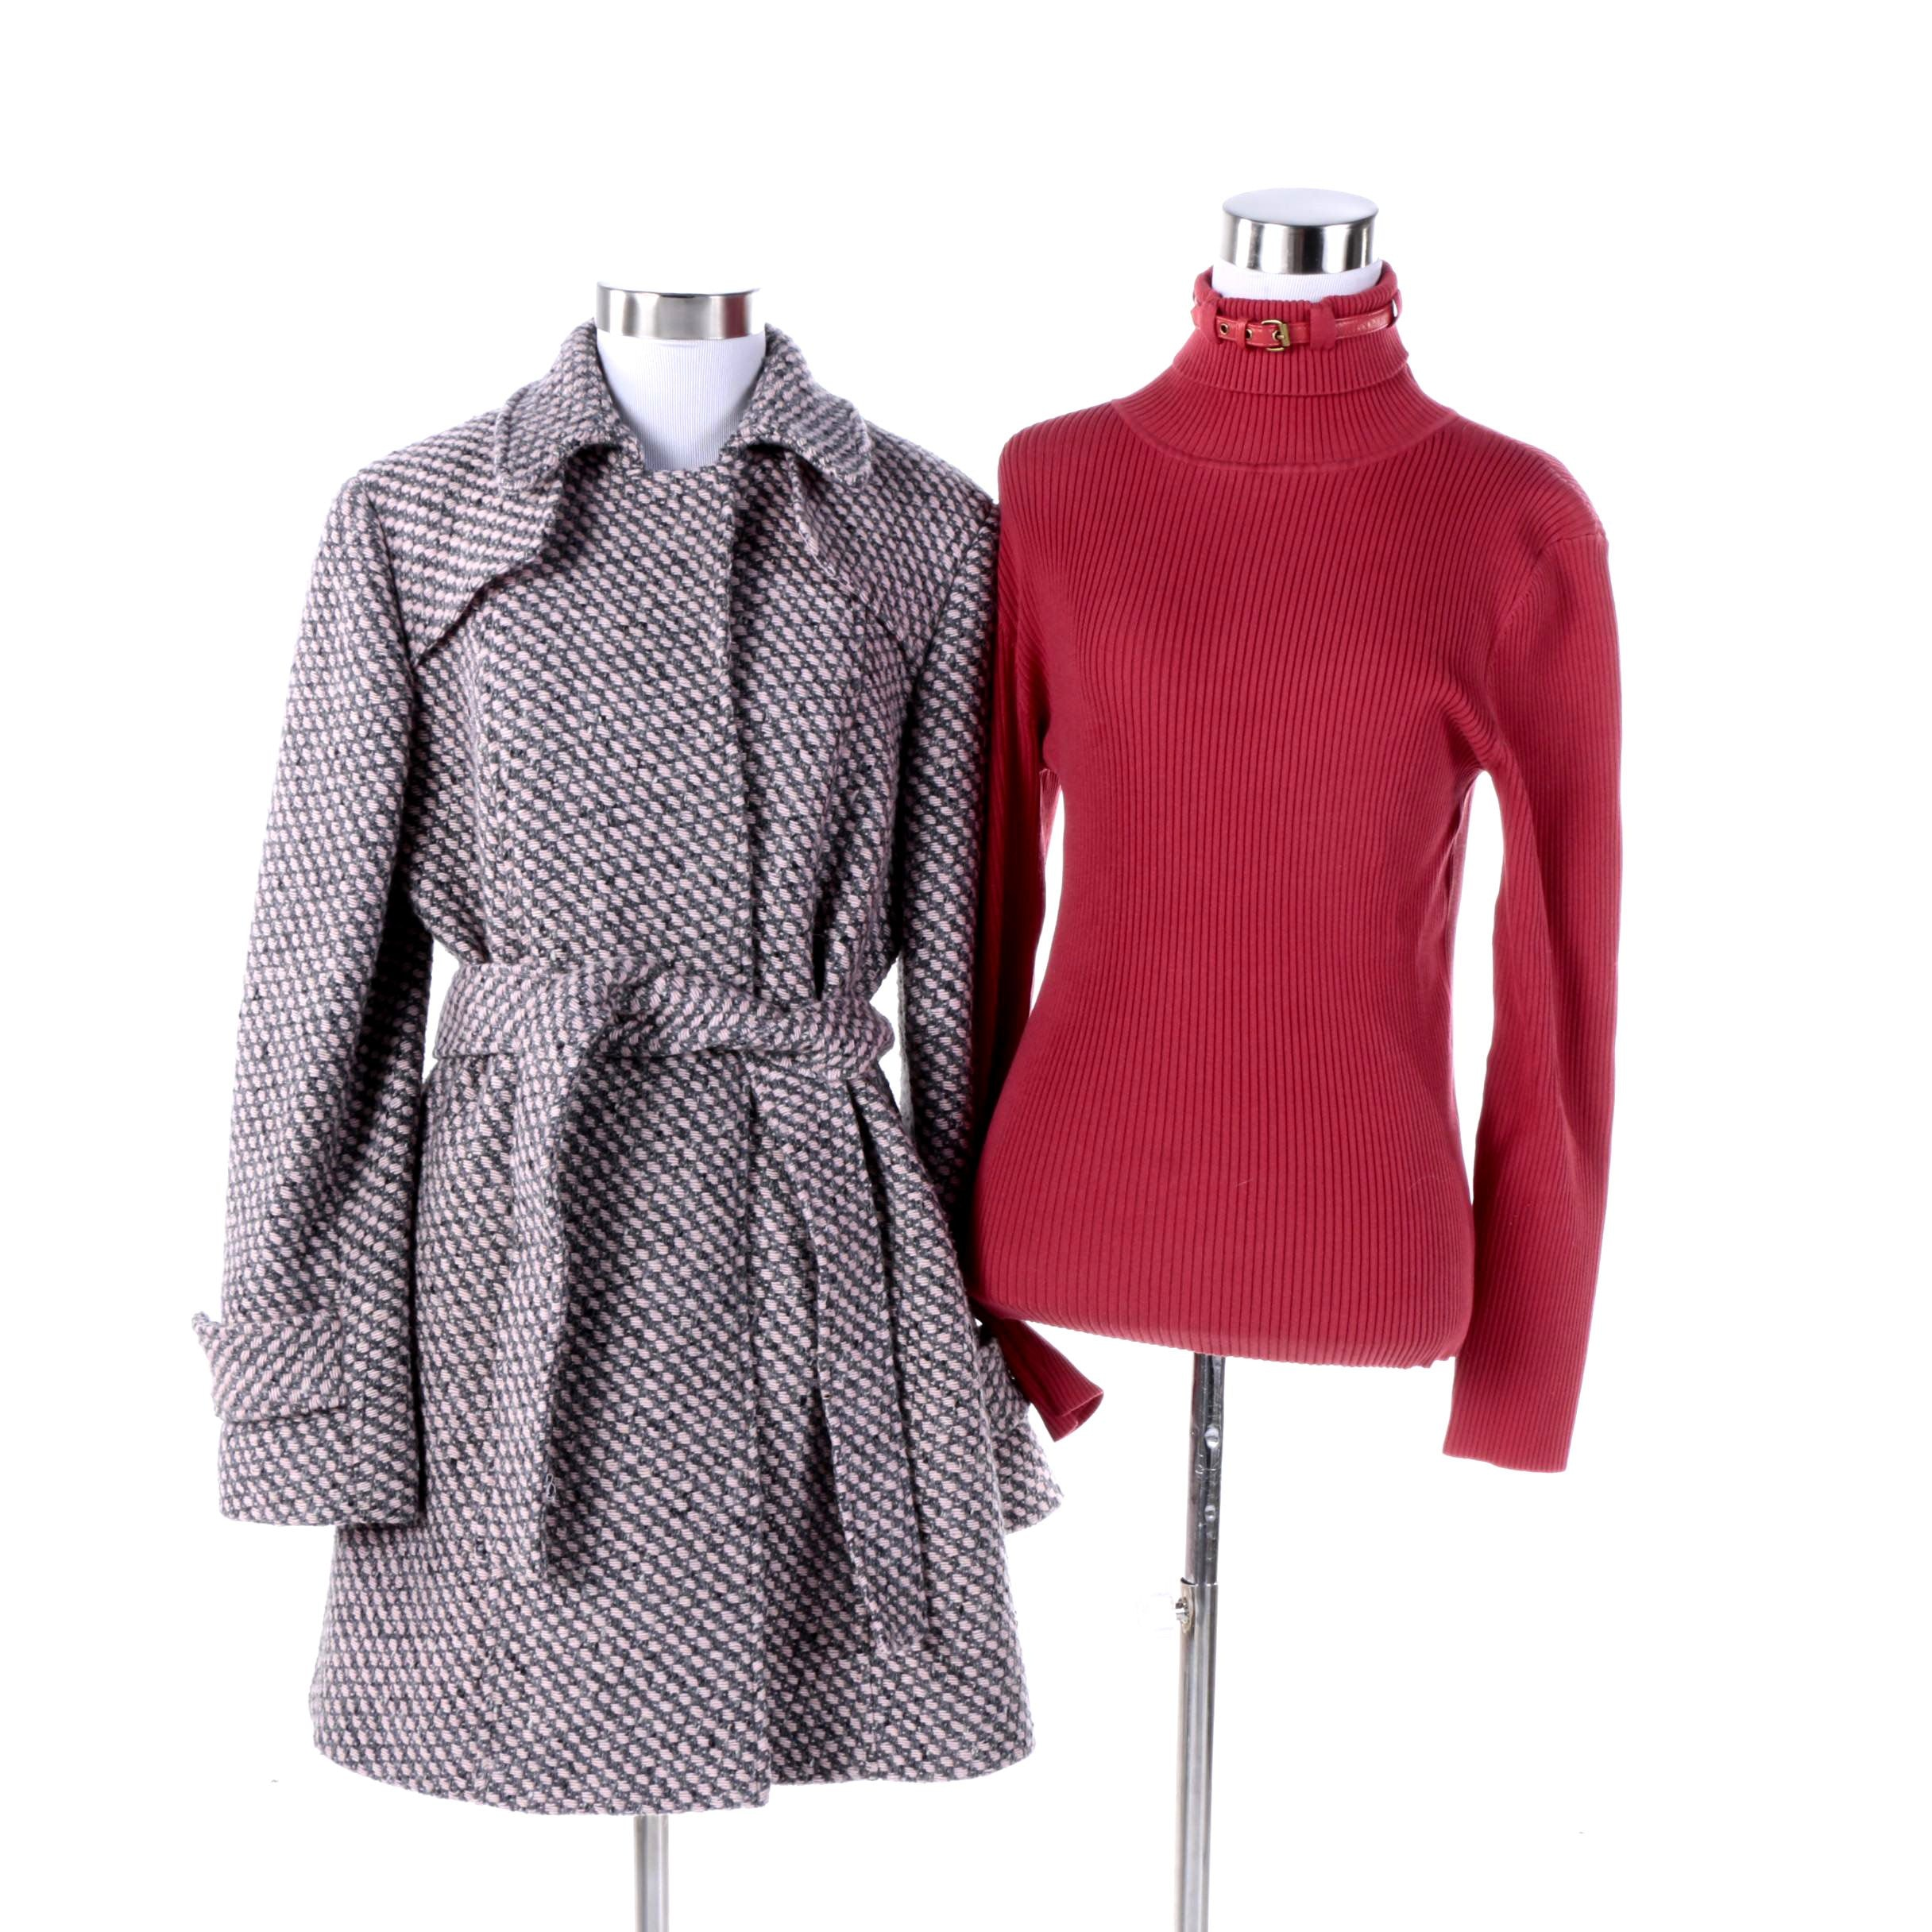 Women's Worth Belted Coat and Turtleneck Sweater